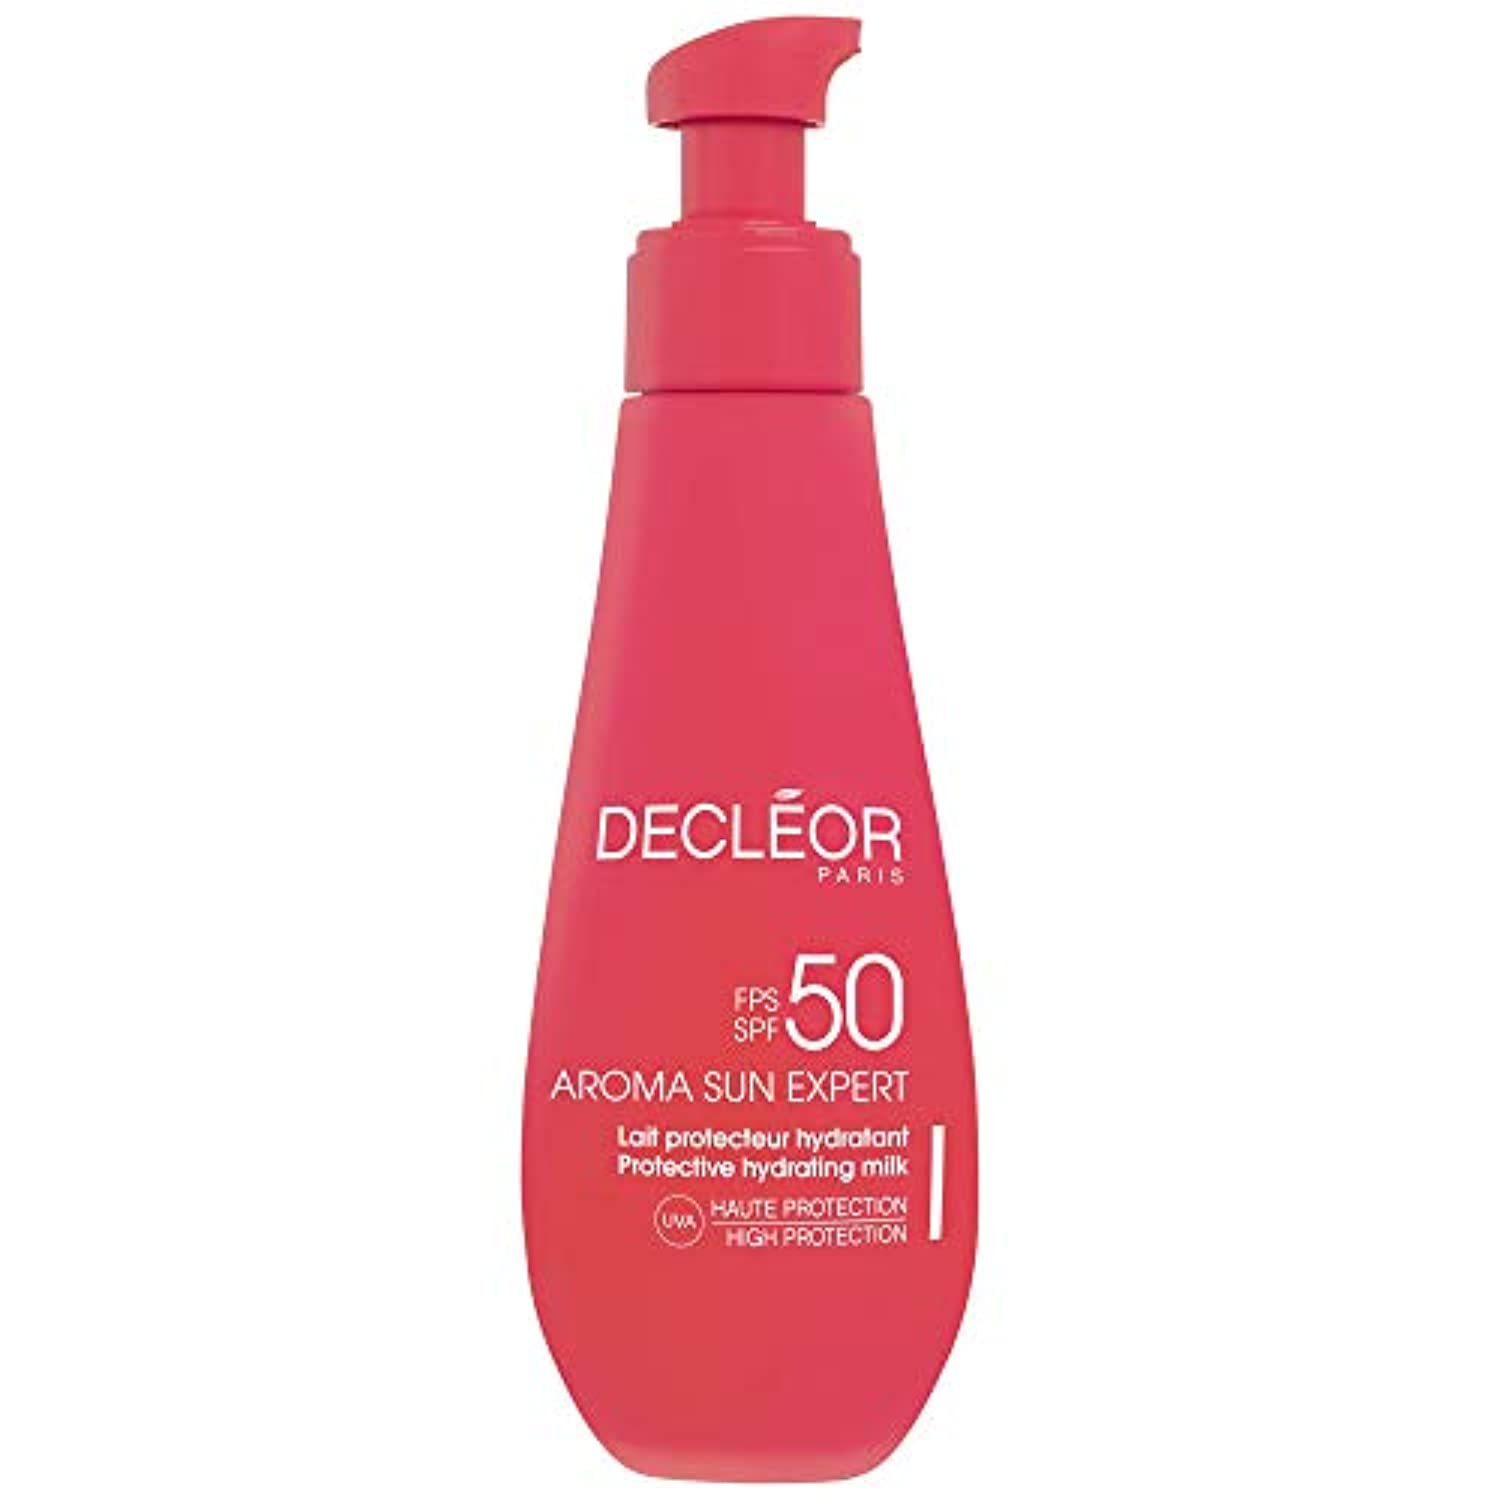 [Decl?or ] デクレオールアロマ日の専門家で超保護抗シワクリームSpf50 - ボディローション150Ml - Decl?or Aroma Sun Expert Ultra Protective Anti-Wrinkle...